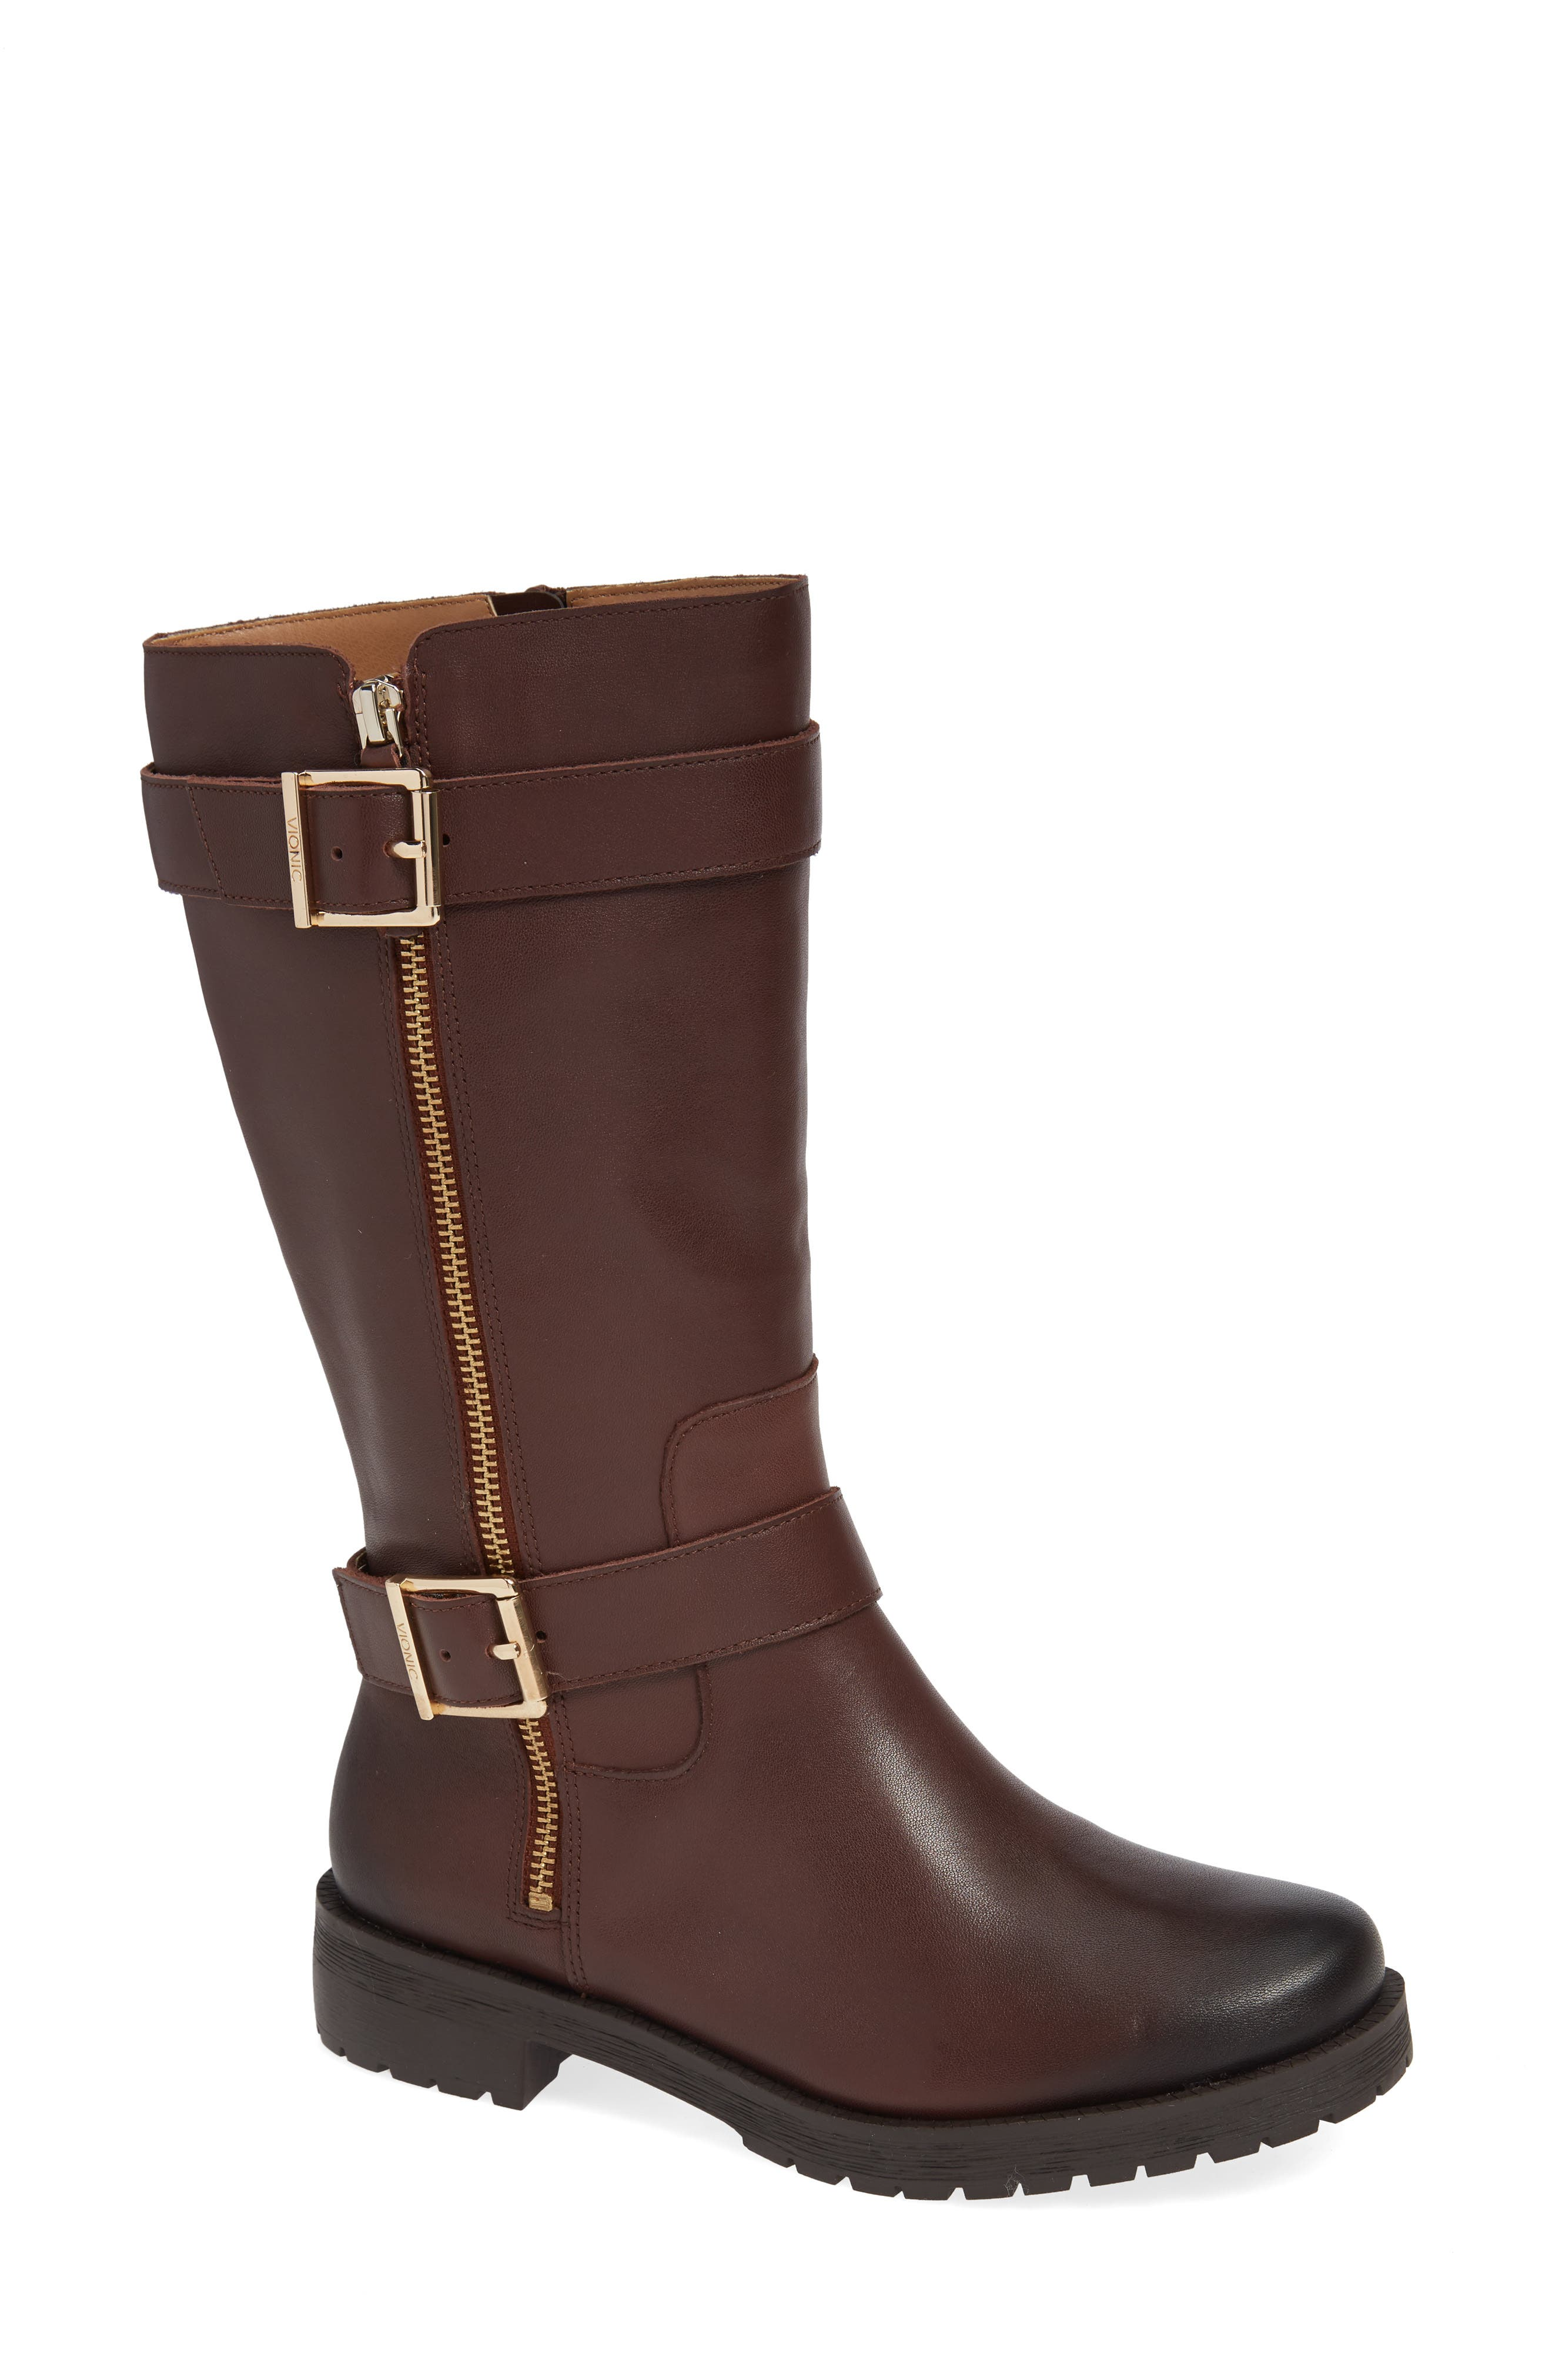 Vionic Marlow Boot, Brown